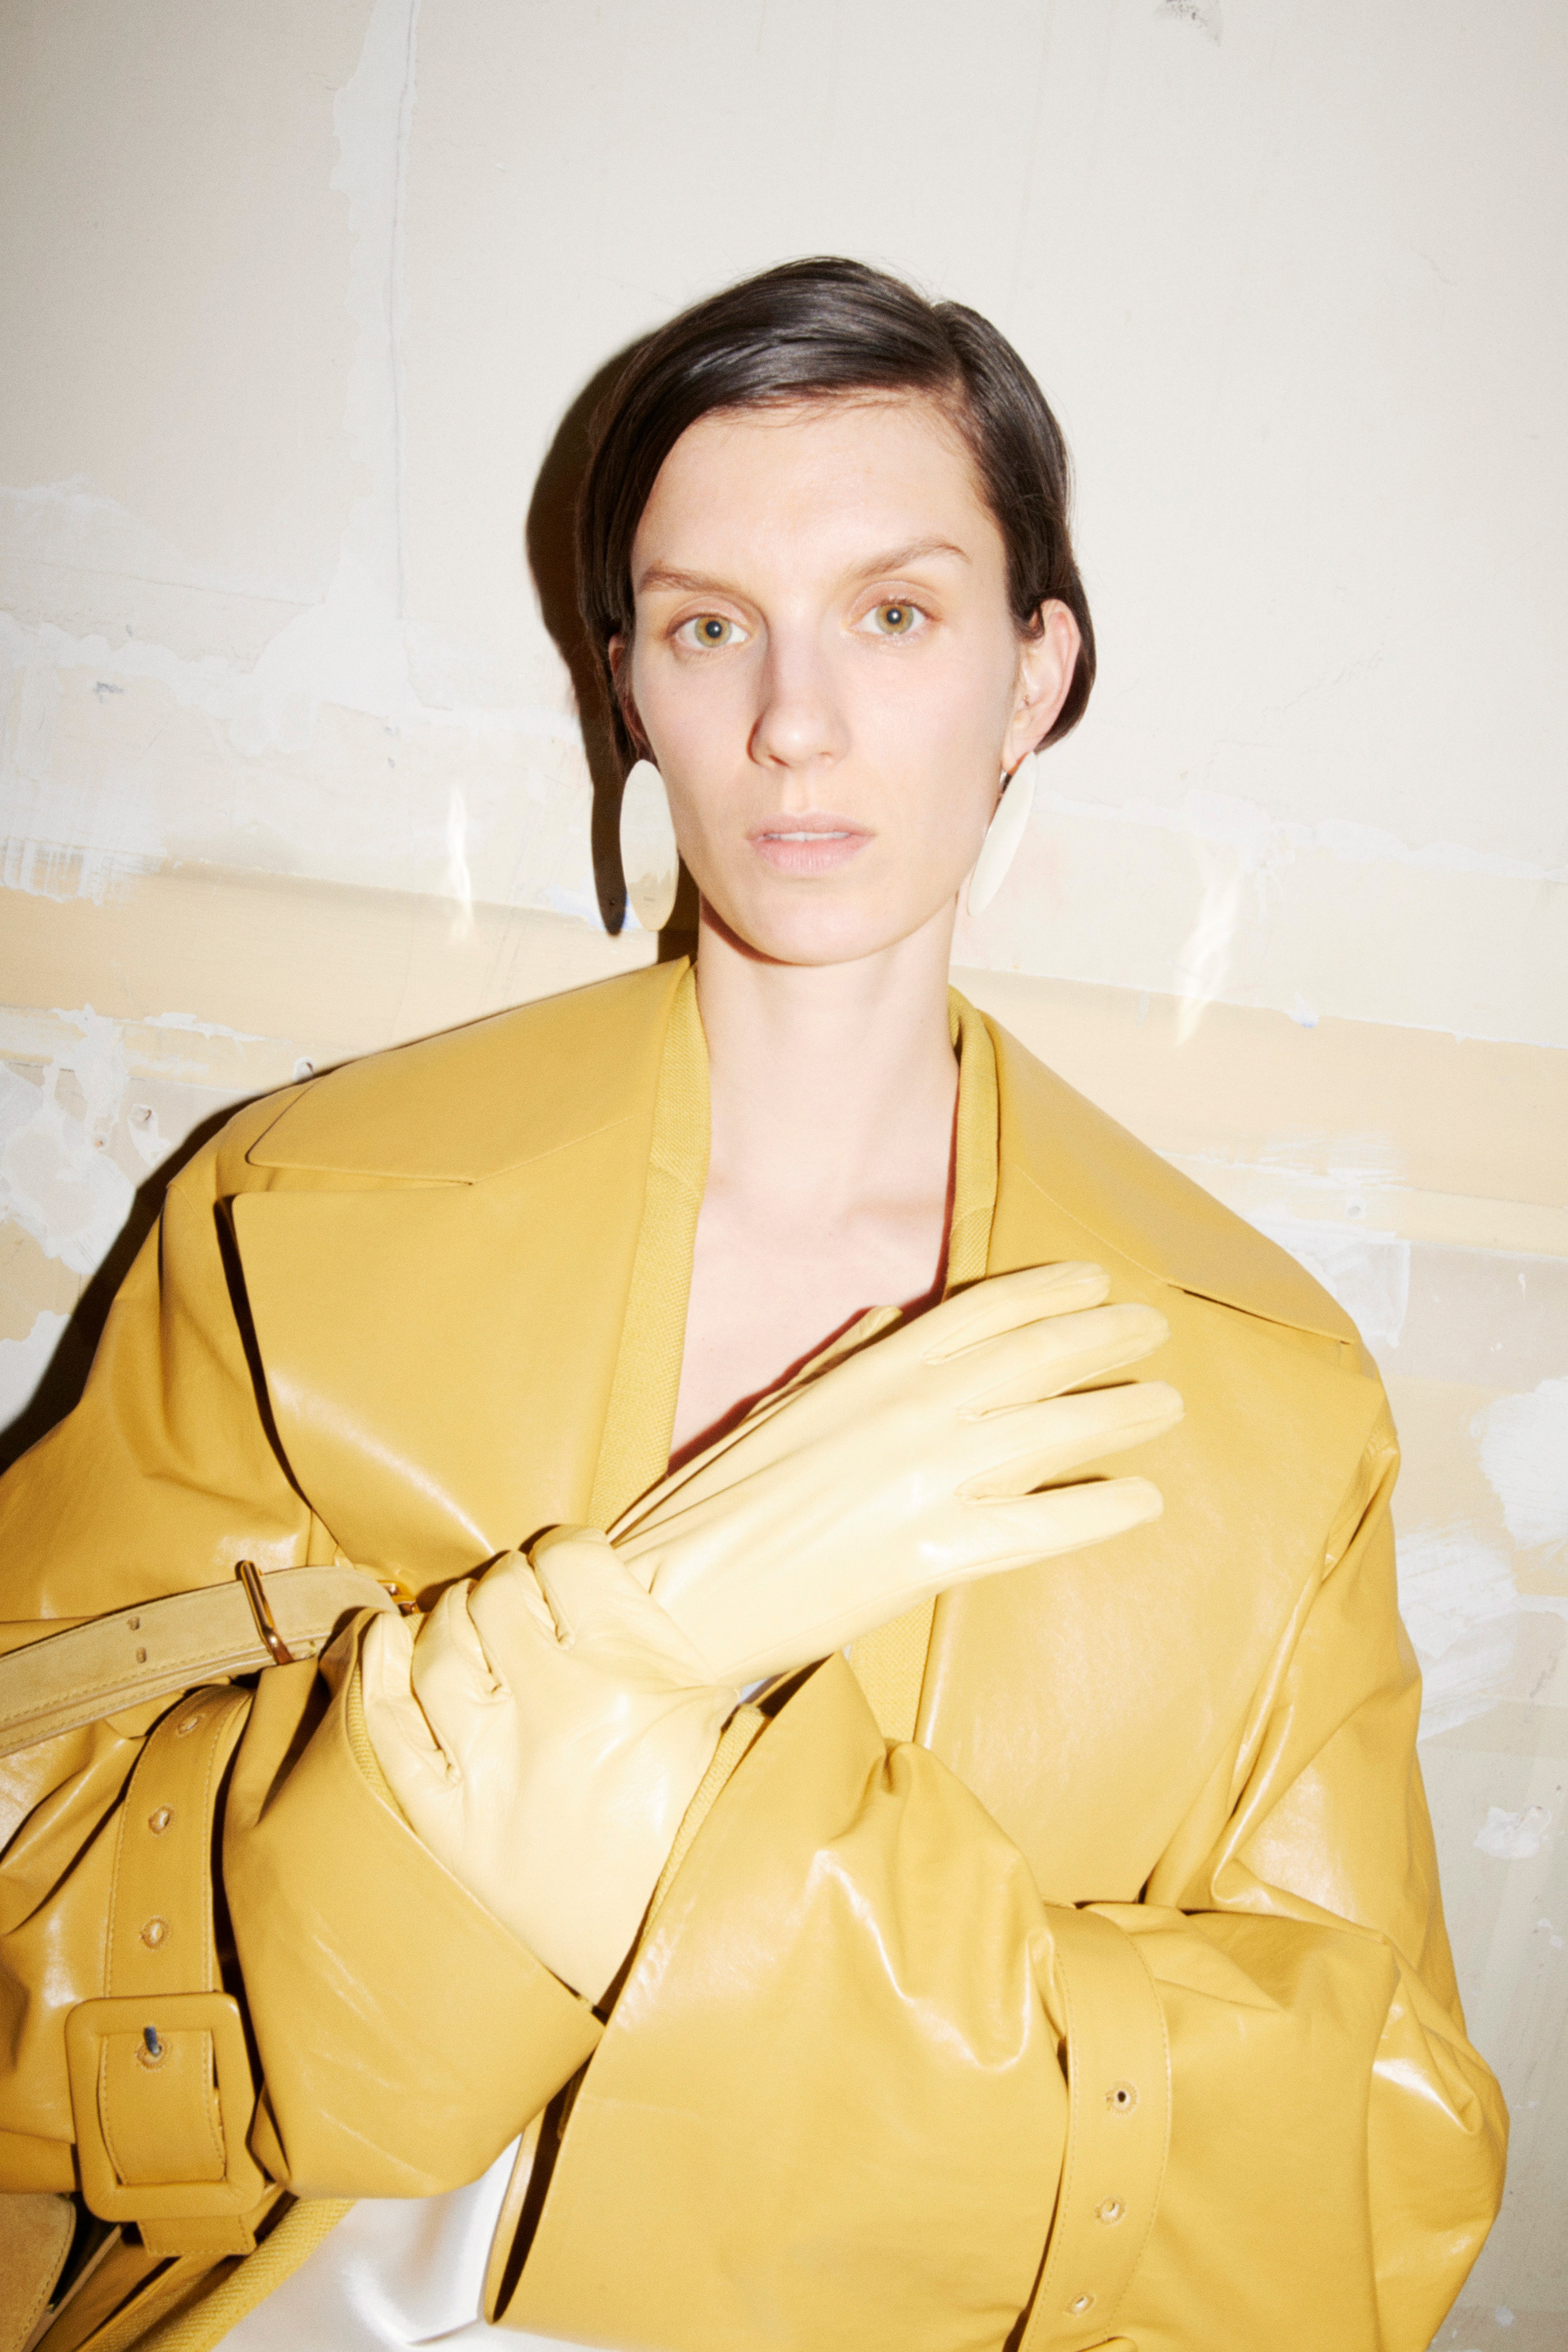 For walks in the fresh air: A seasonal collection of Jil Sander arrived at Asthik (photo 15)